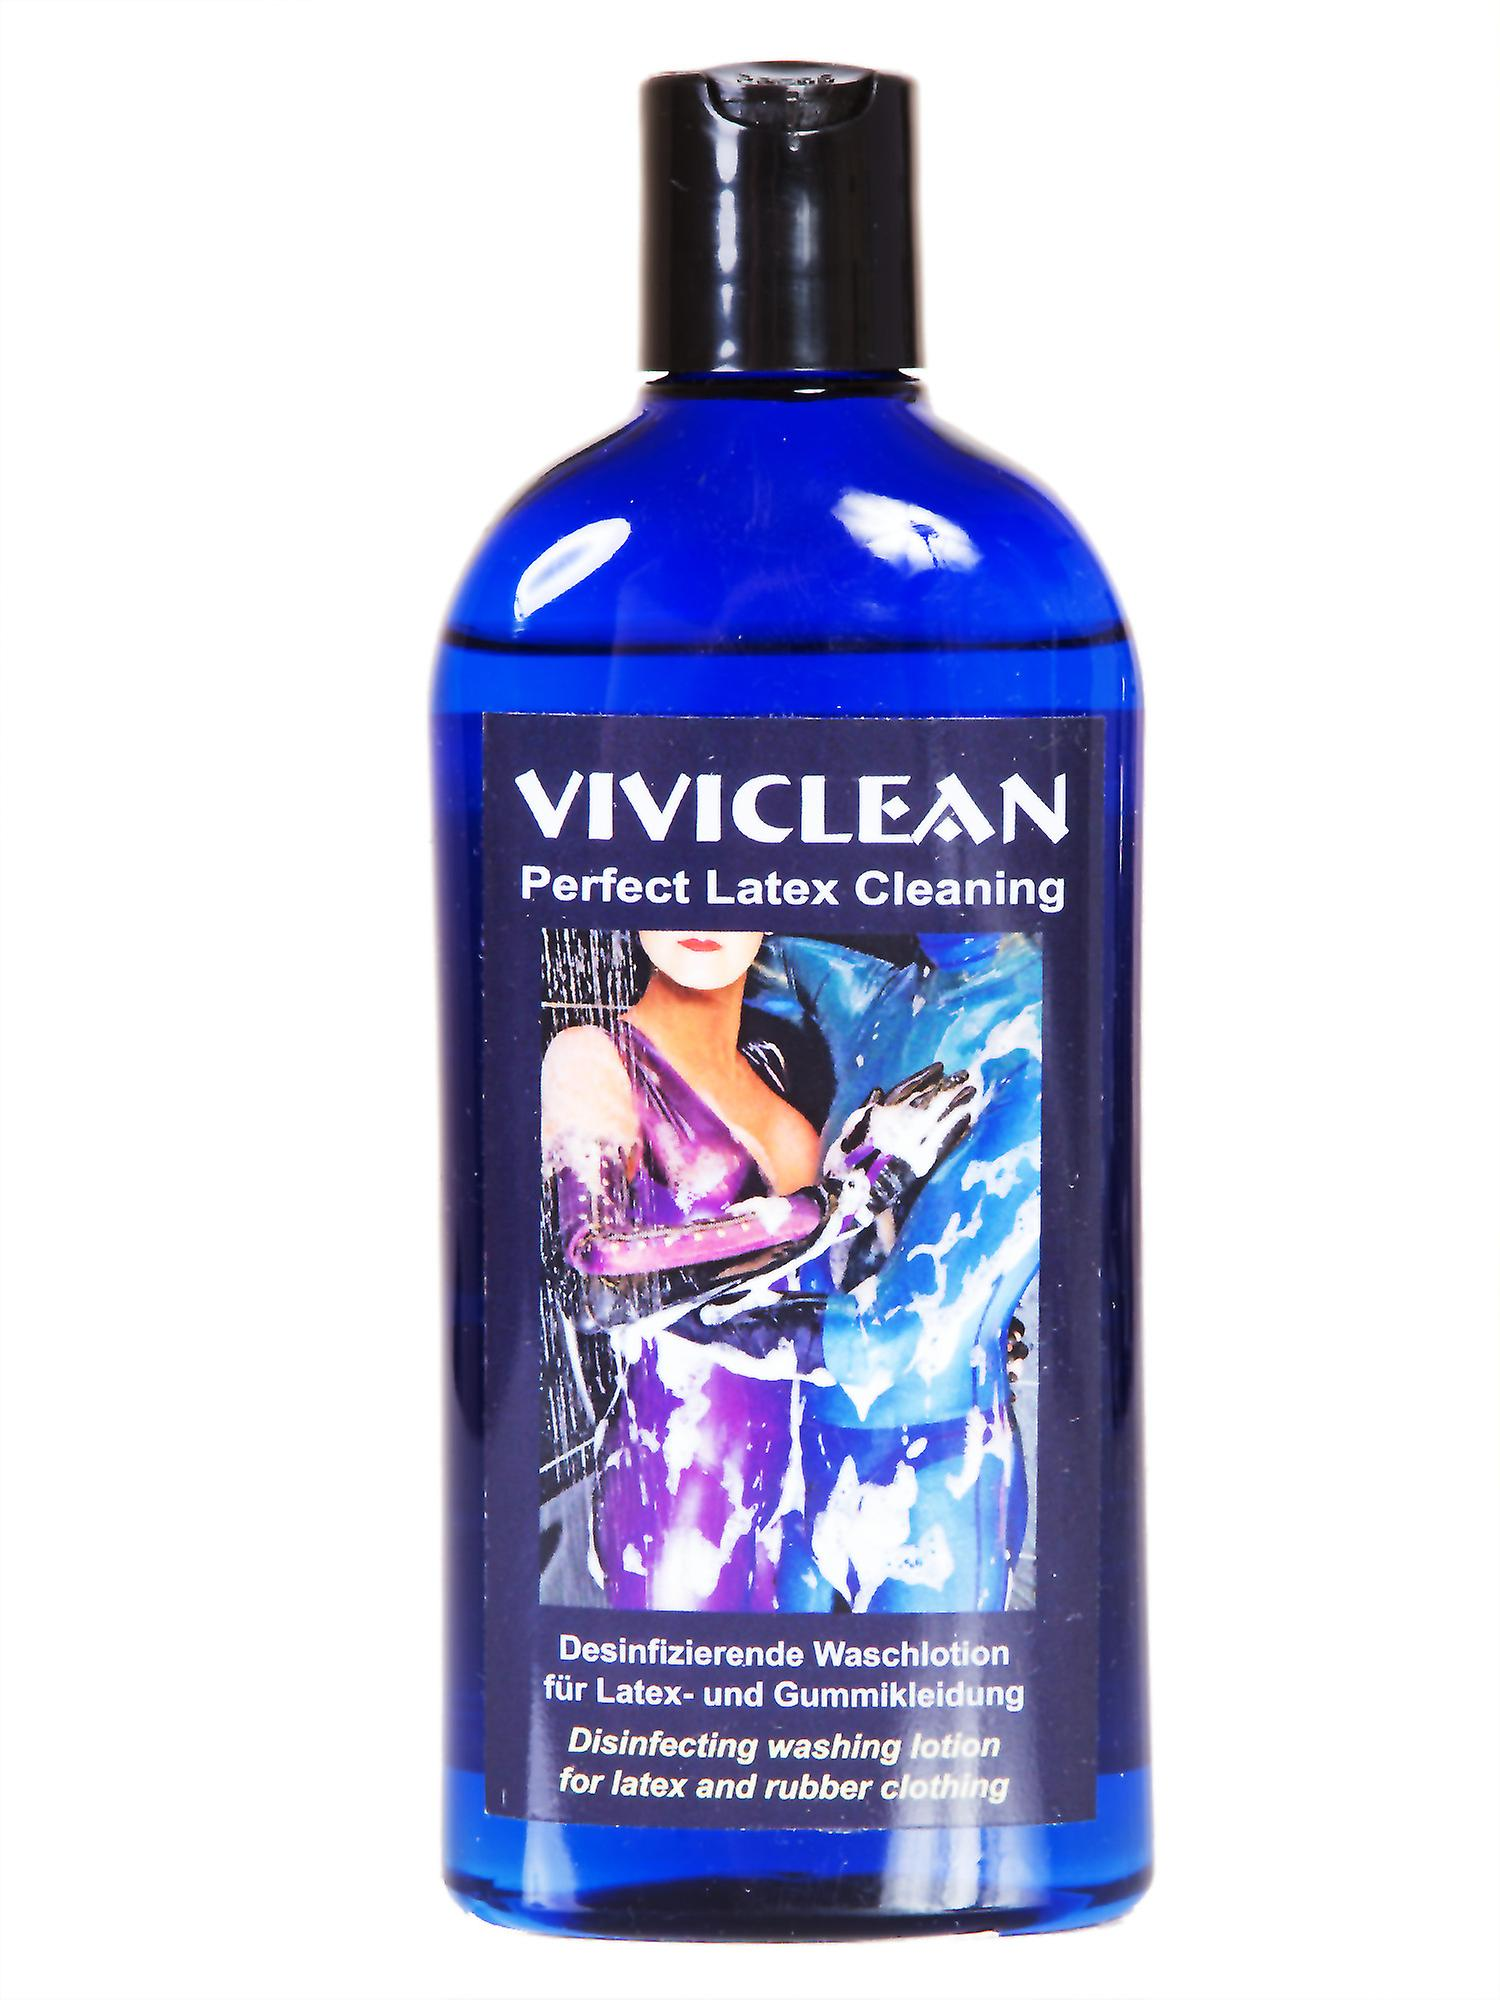 Honour Men's &Women's Viviclean Lotion to Treat Latex Rubber Clothing